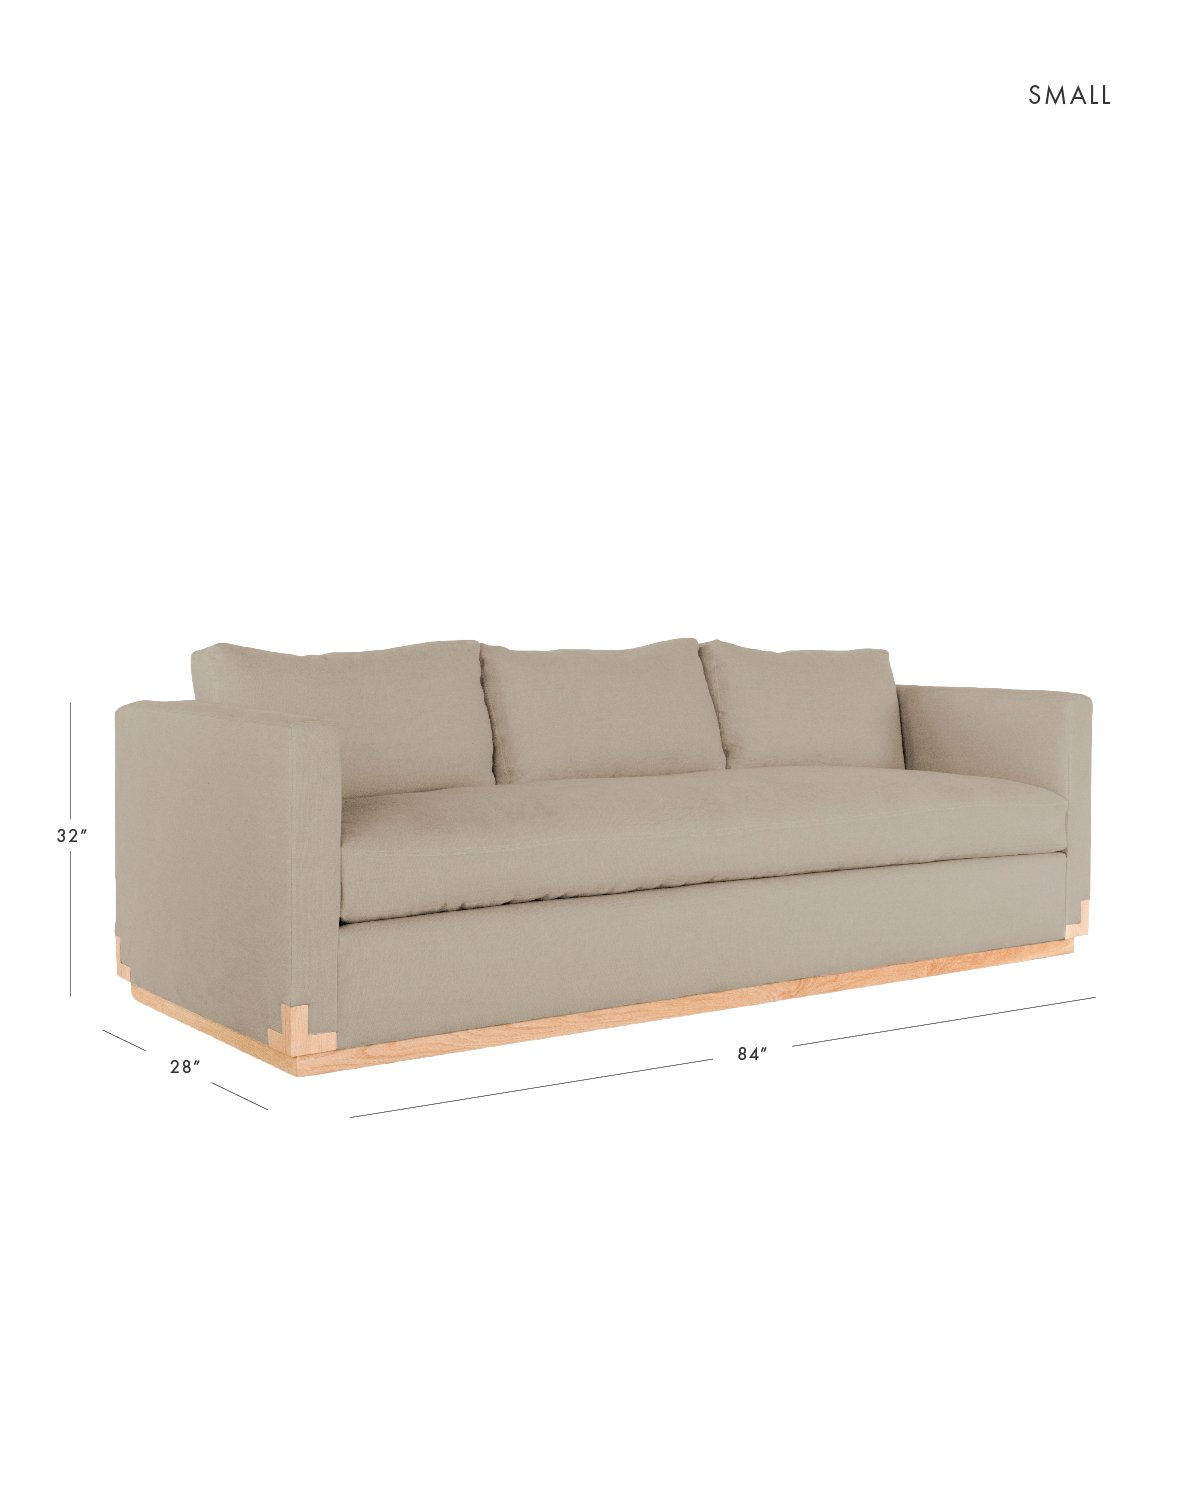 walker_sofa_small.jpg